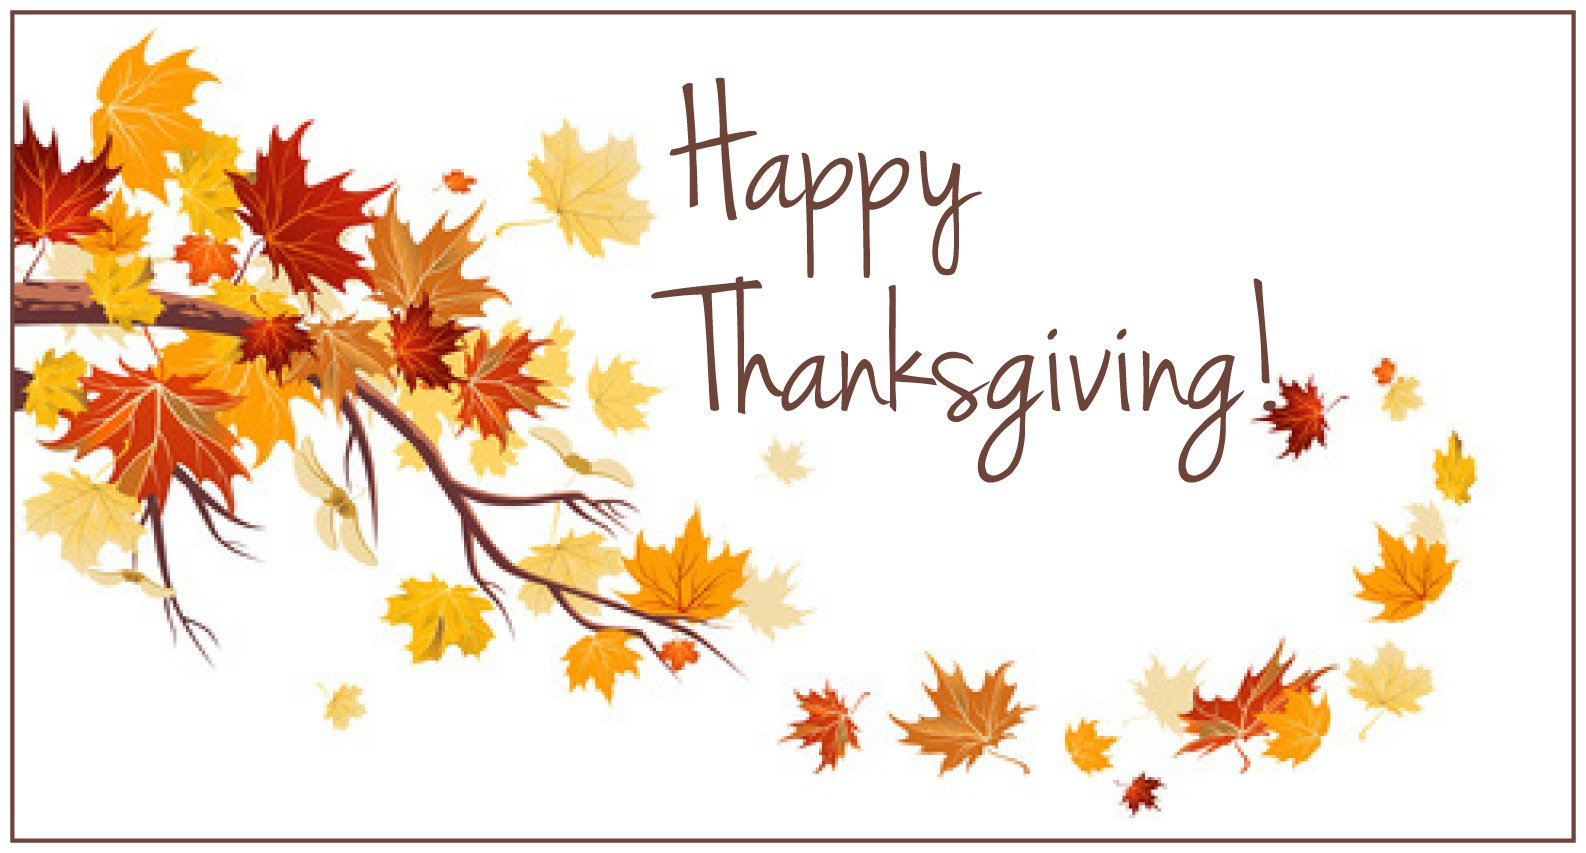 happy-thanksgiving-clip-art-188746412230421938195.jpg